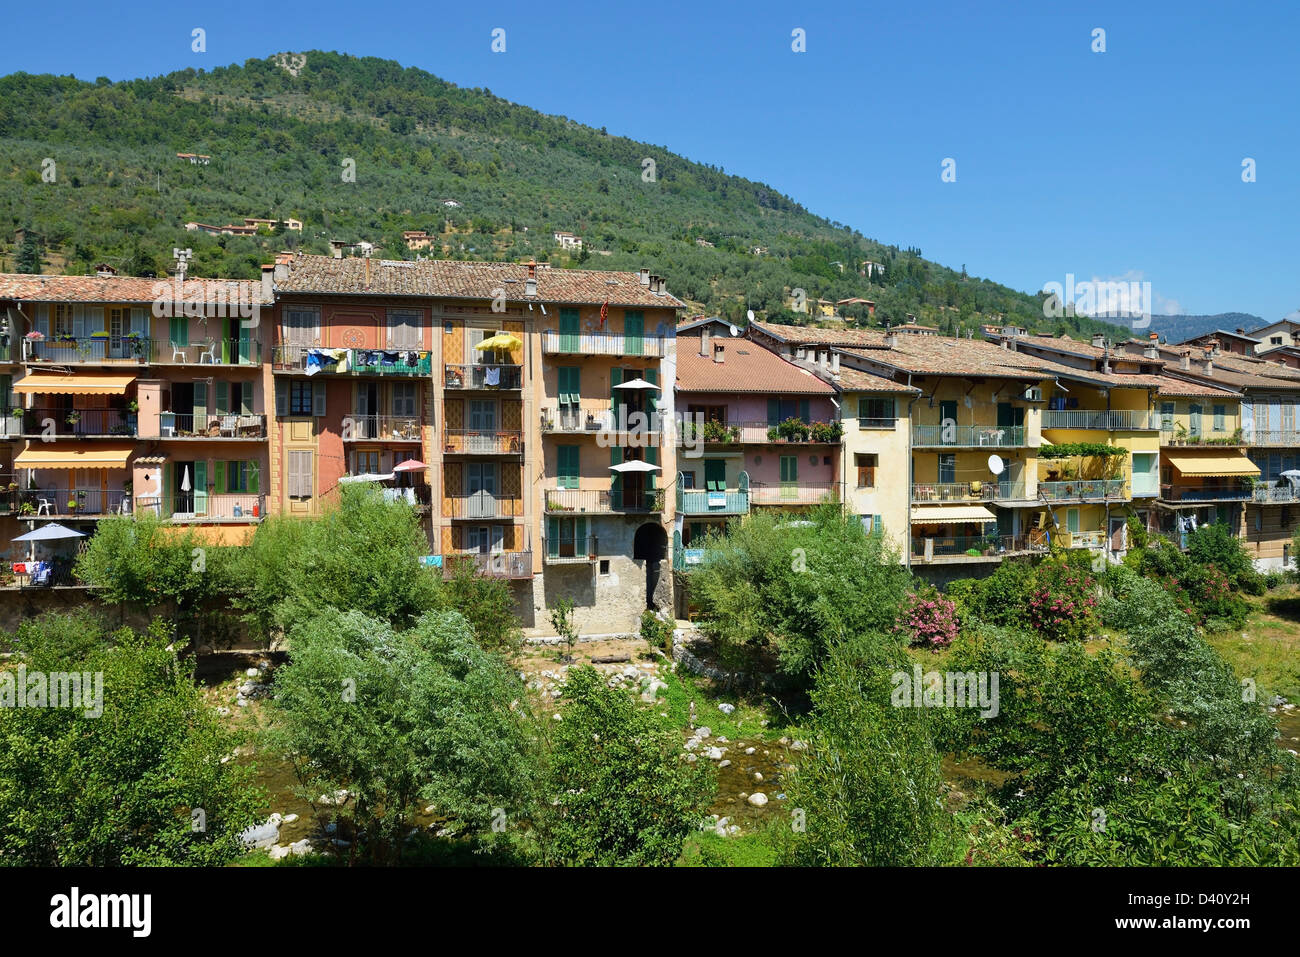 Houses along the river Bevera in Sospel, Alpes-Maritimes, Provence, France - Stock Image